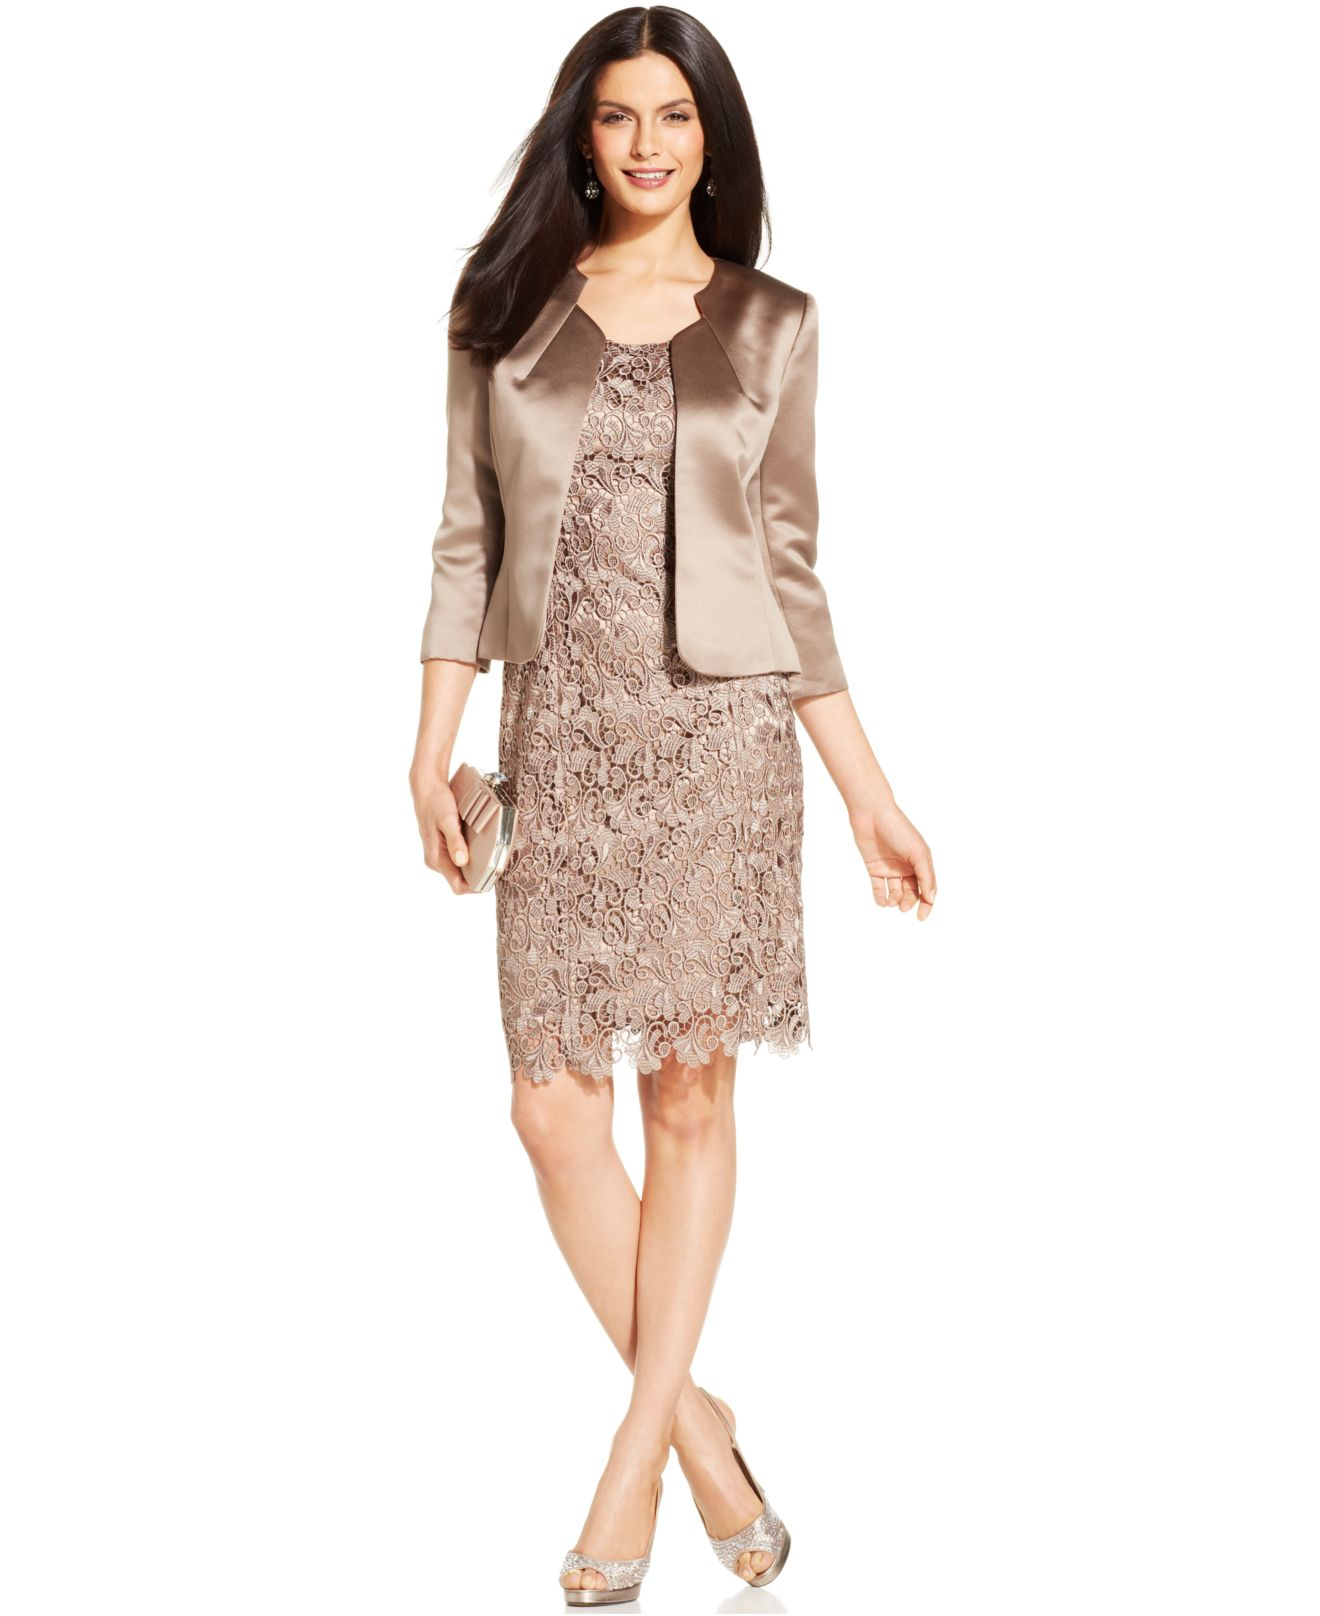 e1683f344465 Tahari Tahari Lace Dress Suit With Satin Jacket in Natural - Lyst